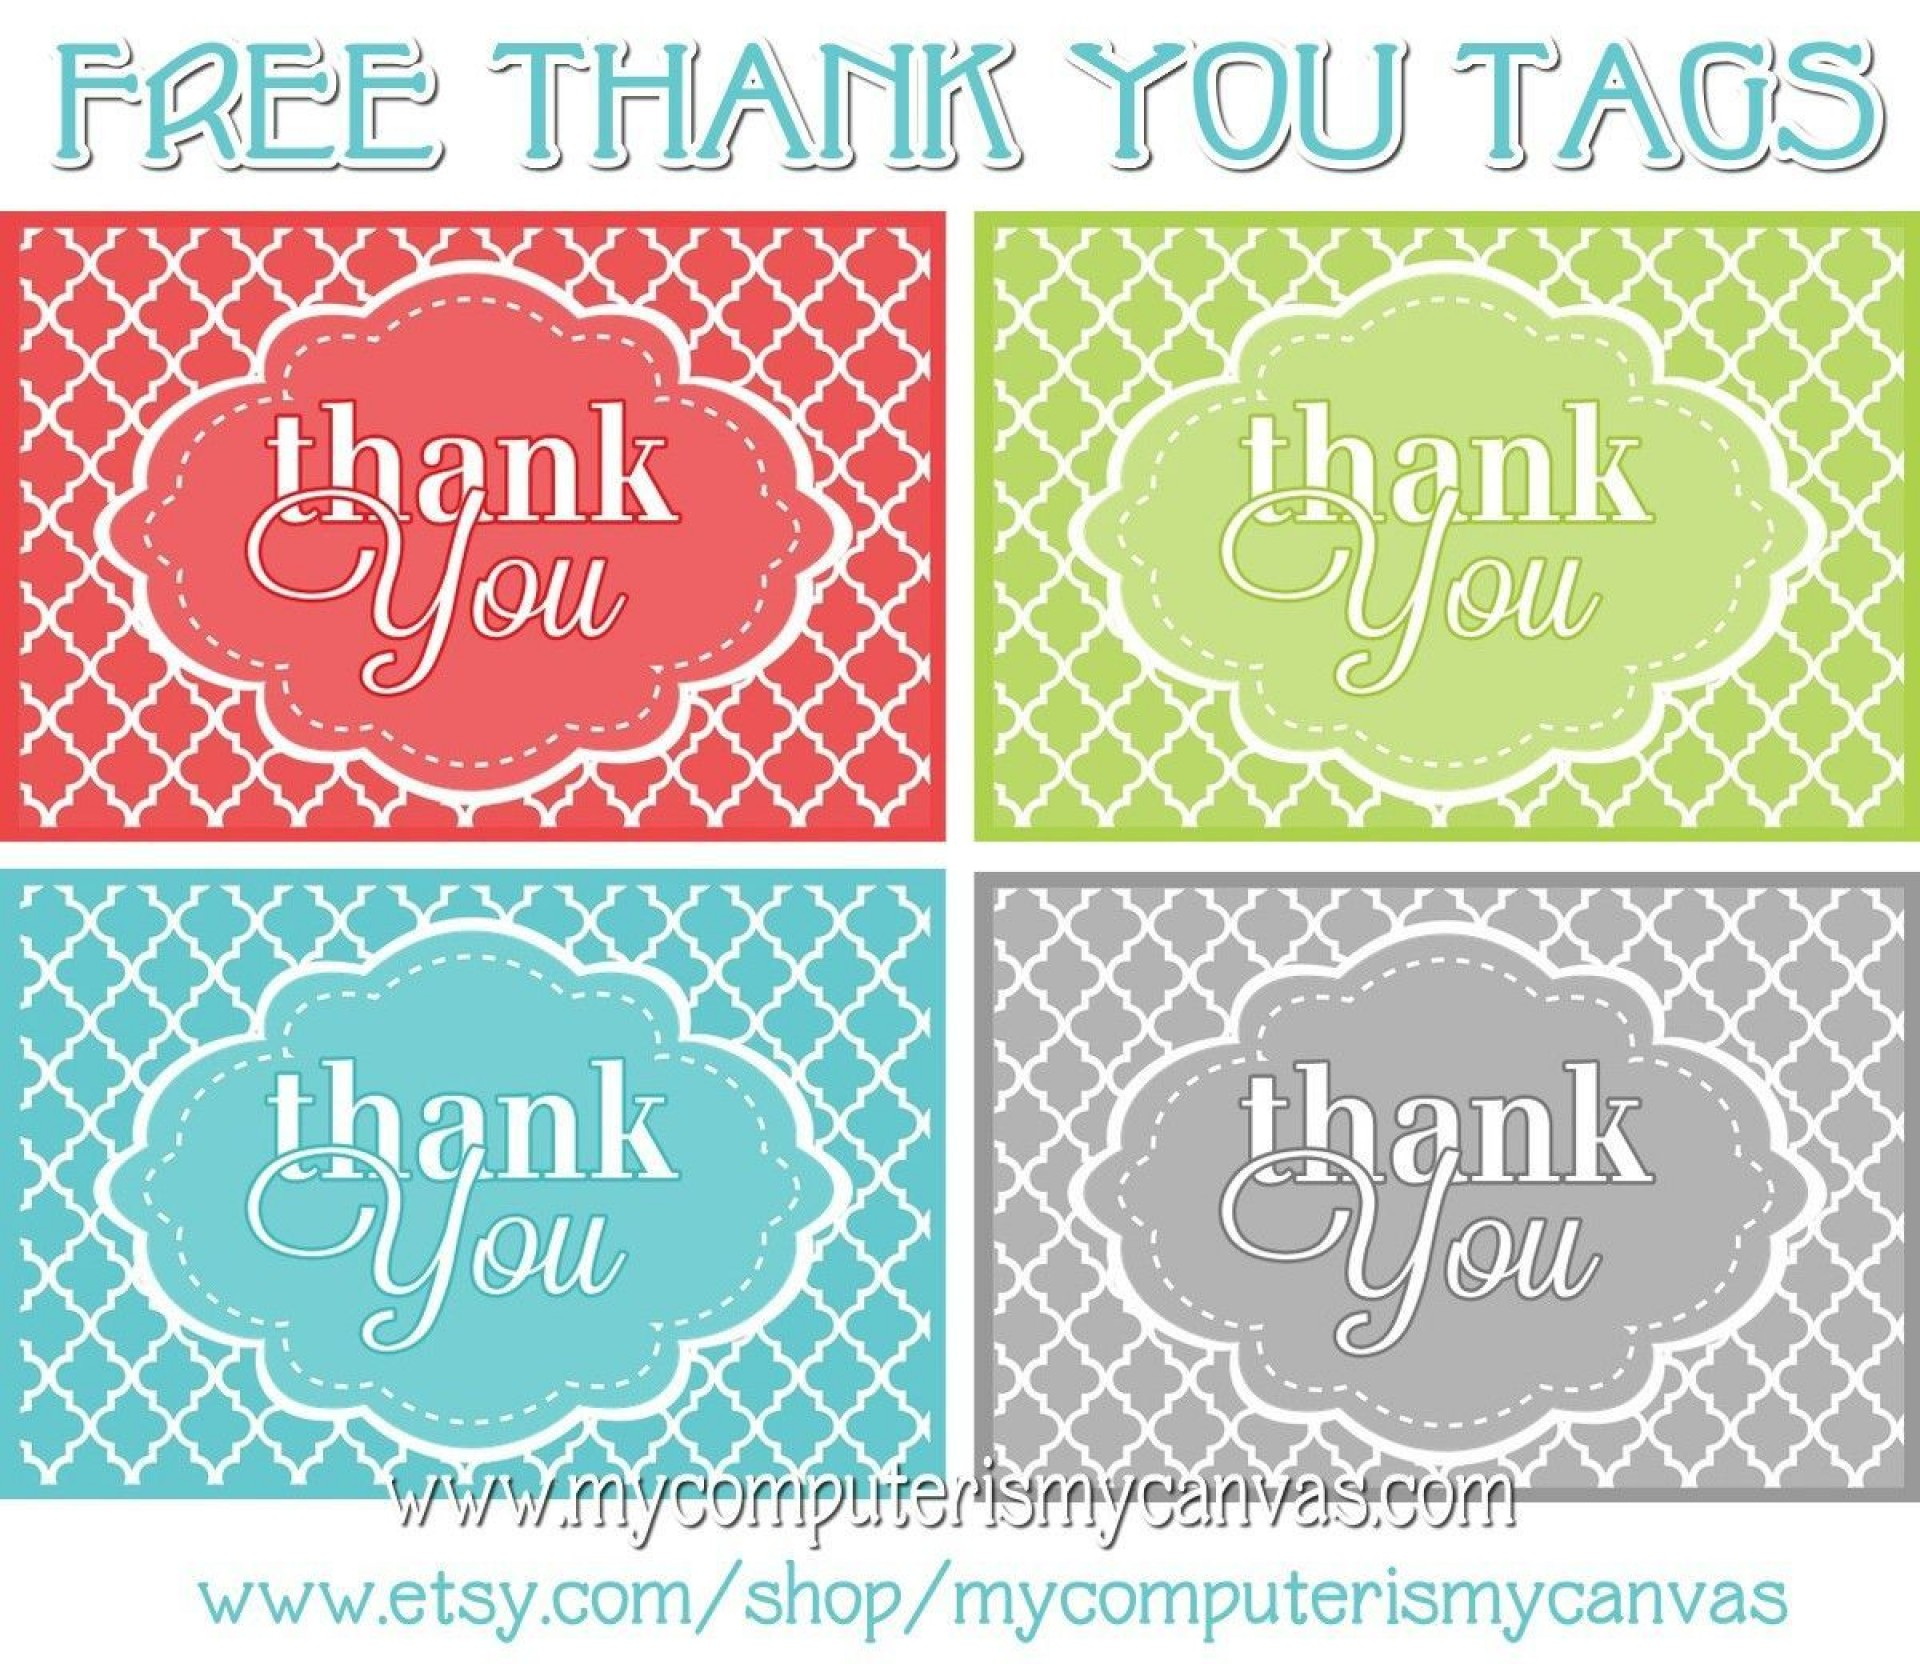 002 Unusual Free Printable Thank You Gift Tag Template High Definition  Templates1920